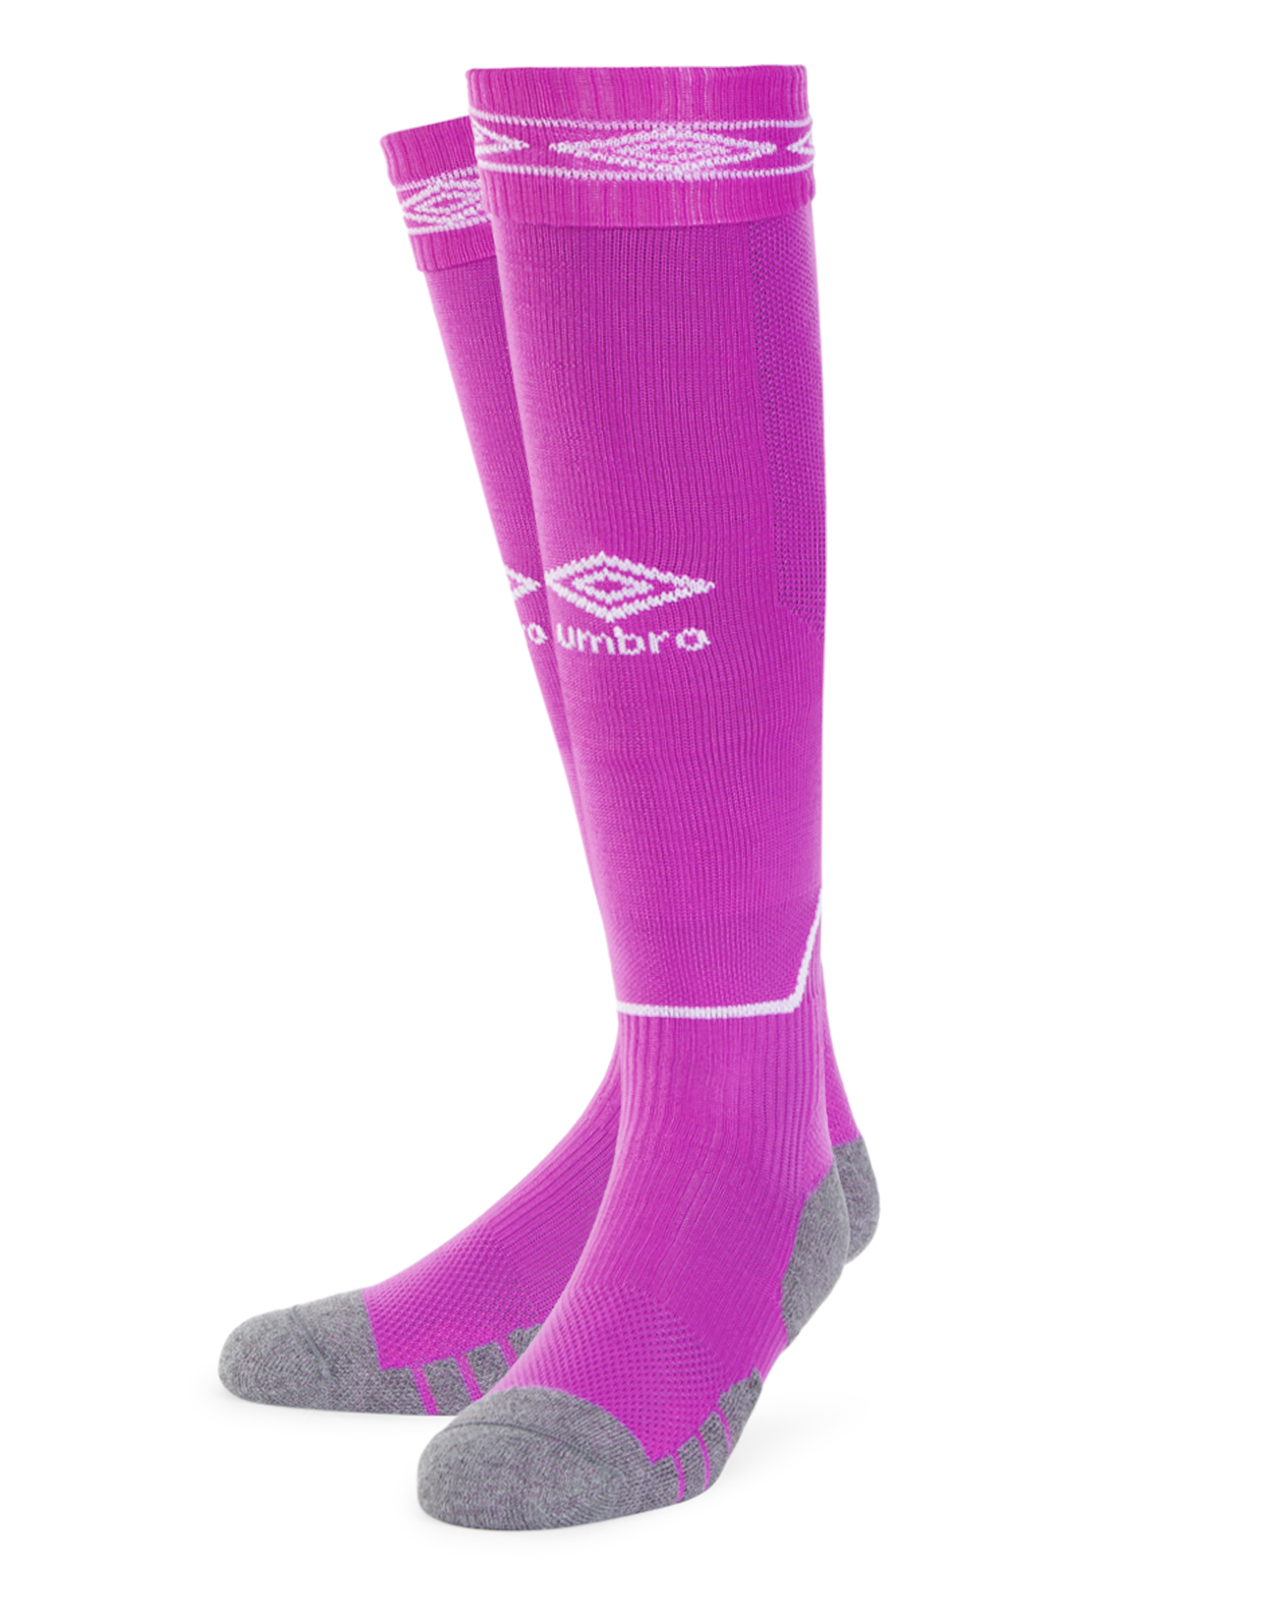 Umbro Diamond Top Socks in purple cactus with white Diamond turnover design